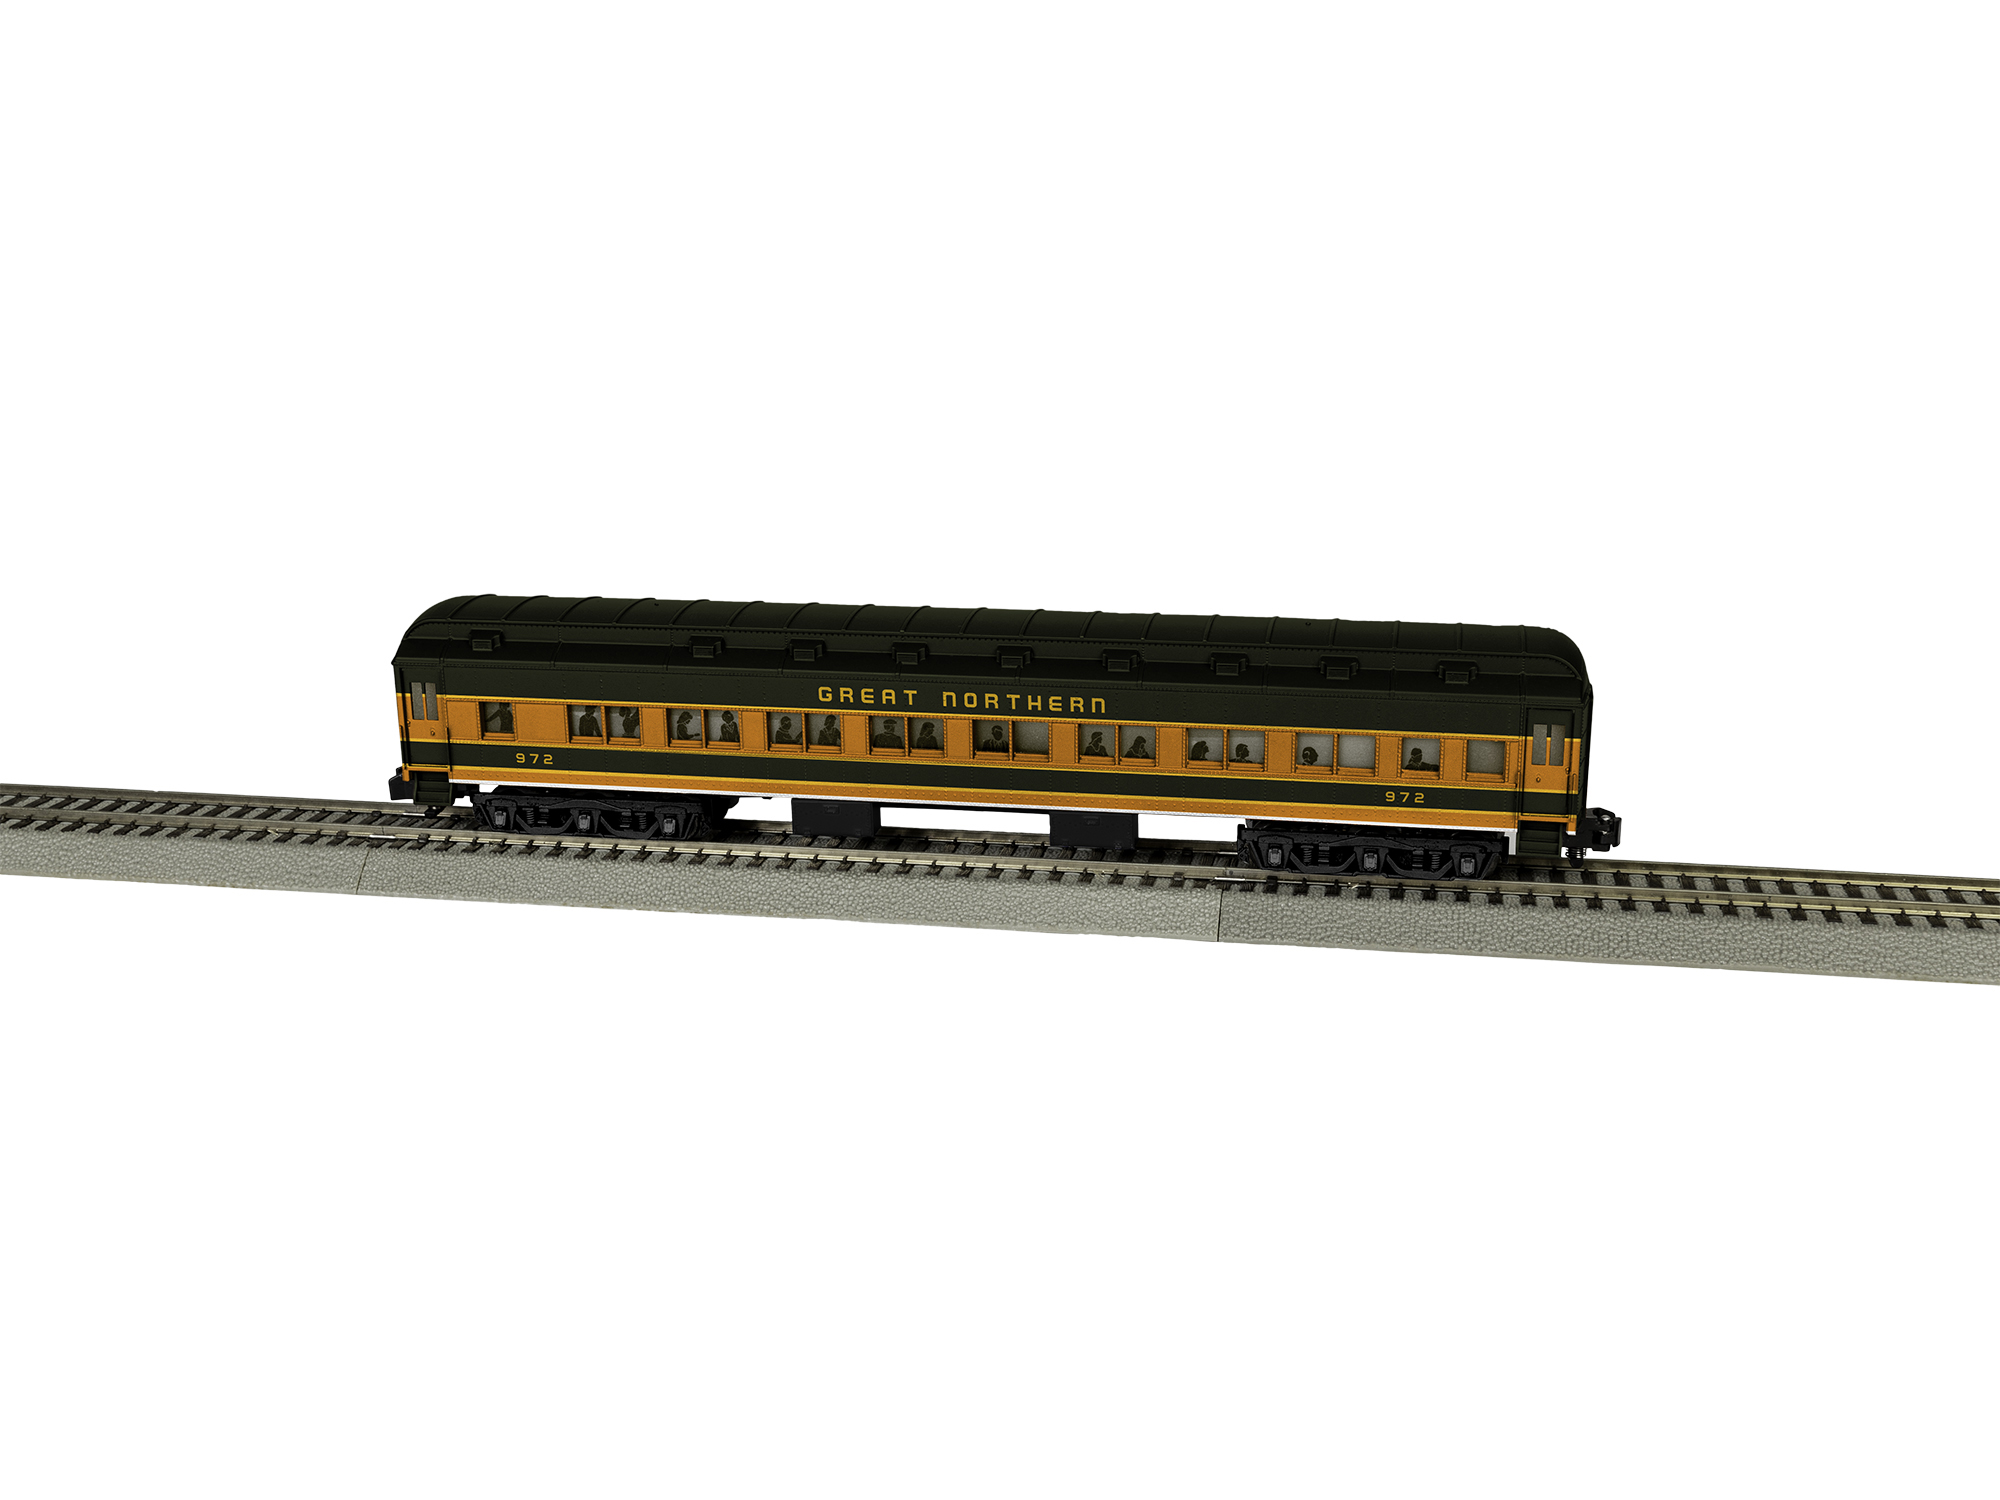 Lionel 2019312 S Great Northern GN Heavyweights Coach #972